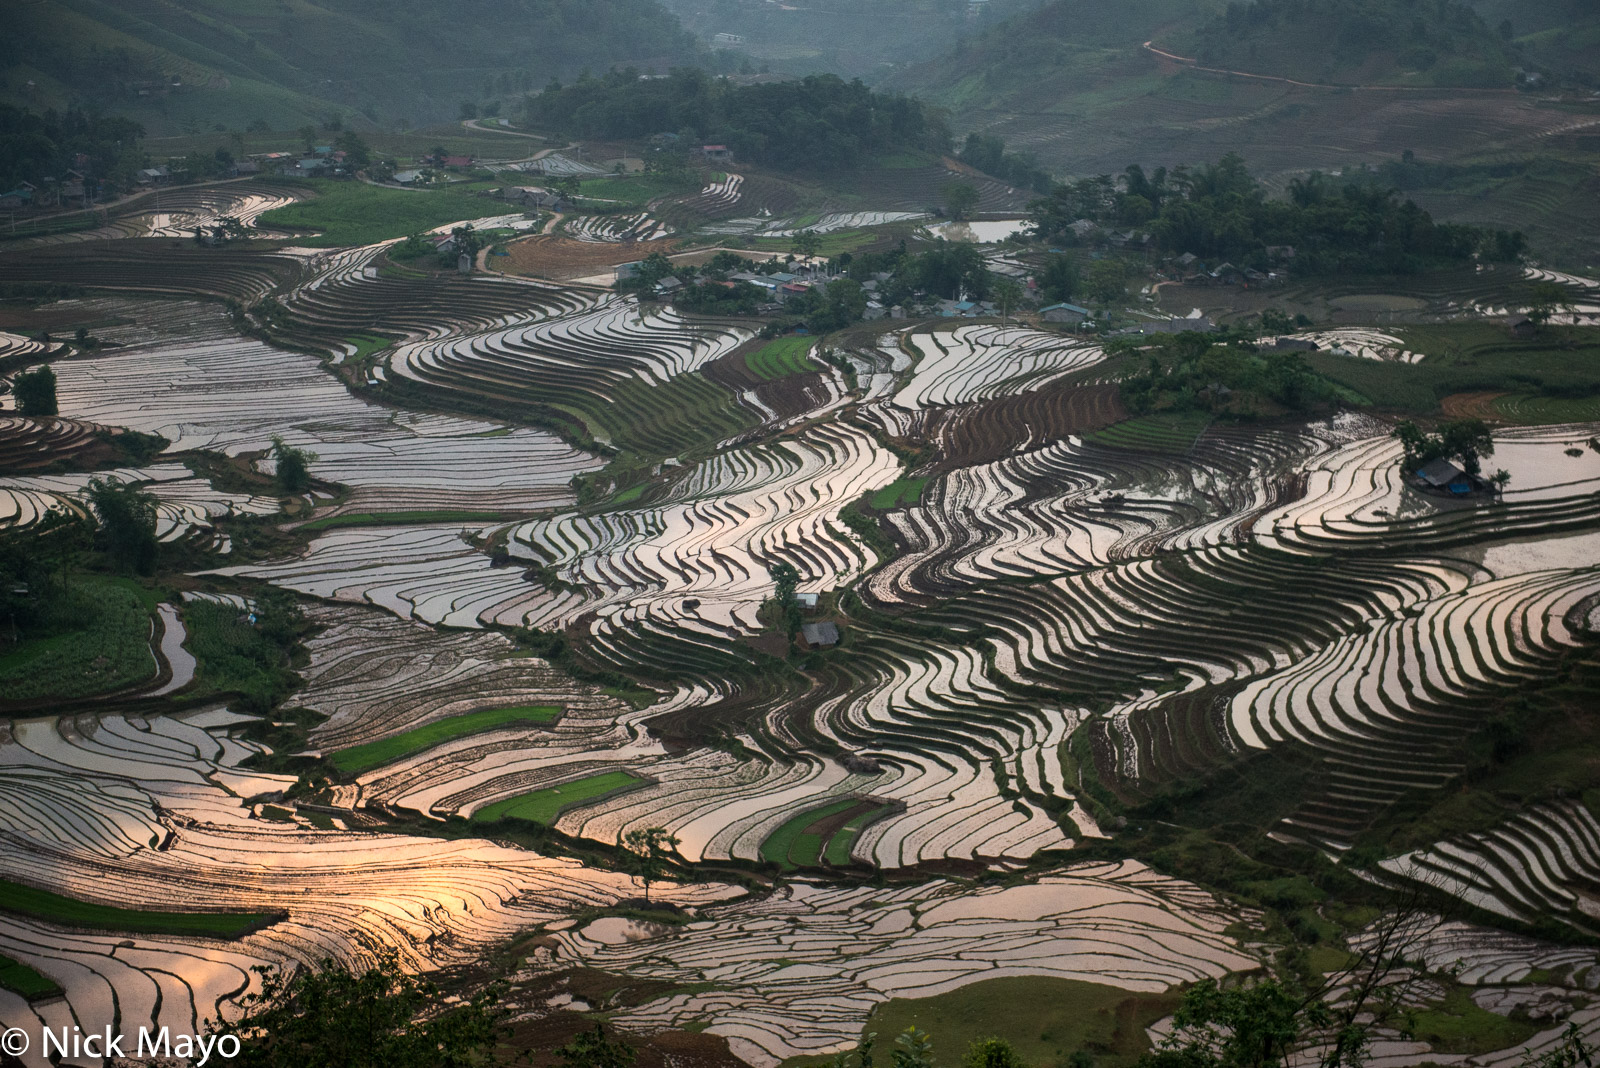 Flooded terraces used for paddy rice cultivation at Sang Ma So at sunrise.